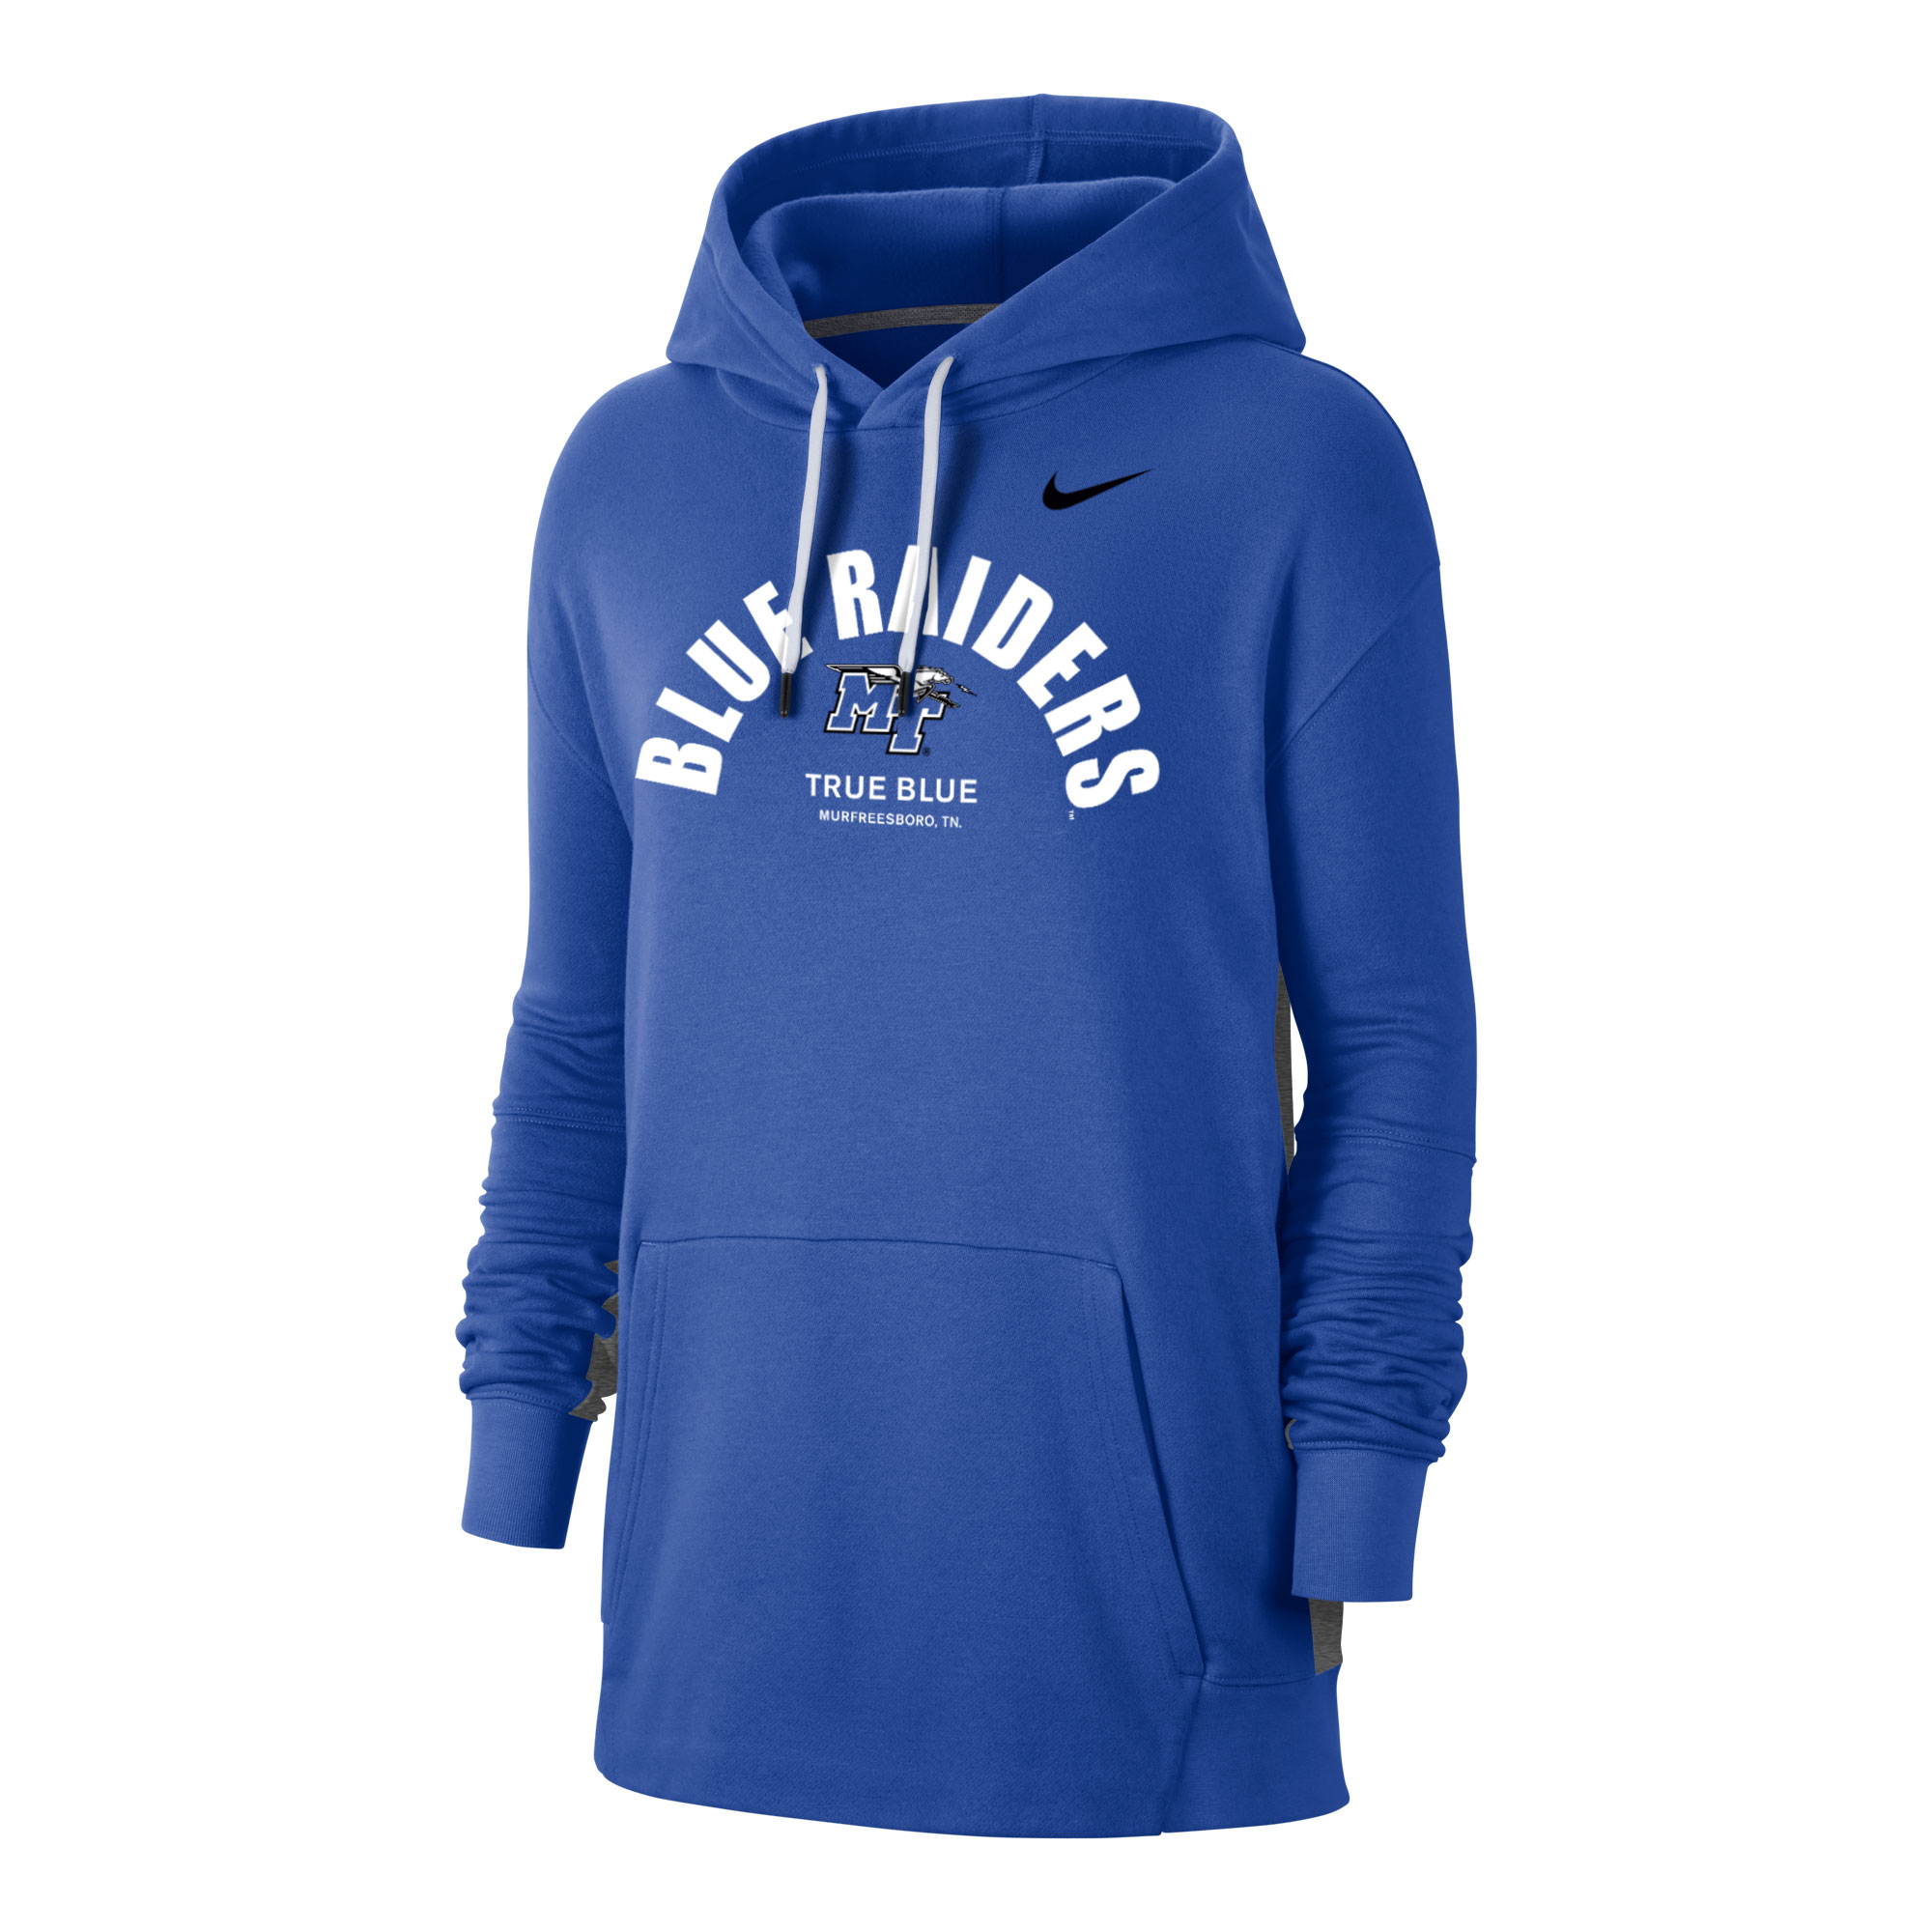 Blue Raiders True Blue Women's Fleece PO Nike® Hoode